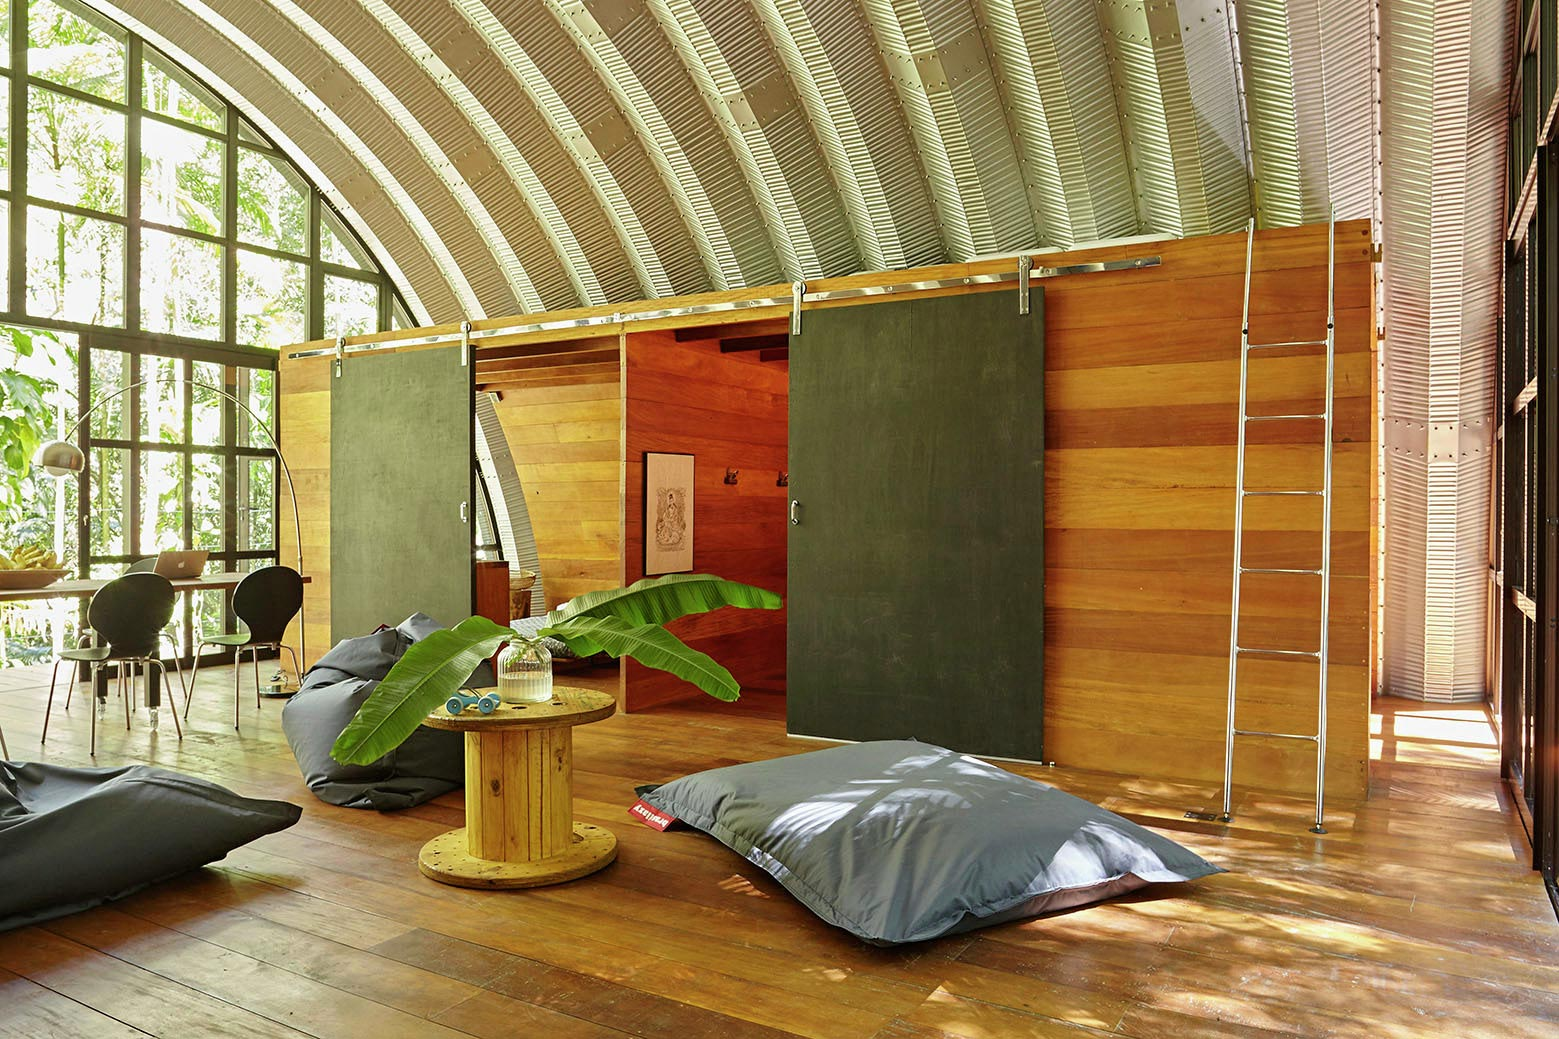 ARCA-home-in-the-middle-of-the-Brazilian-Atlantic-Forest-by-Atelier-Marko-Brajovic-13